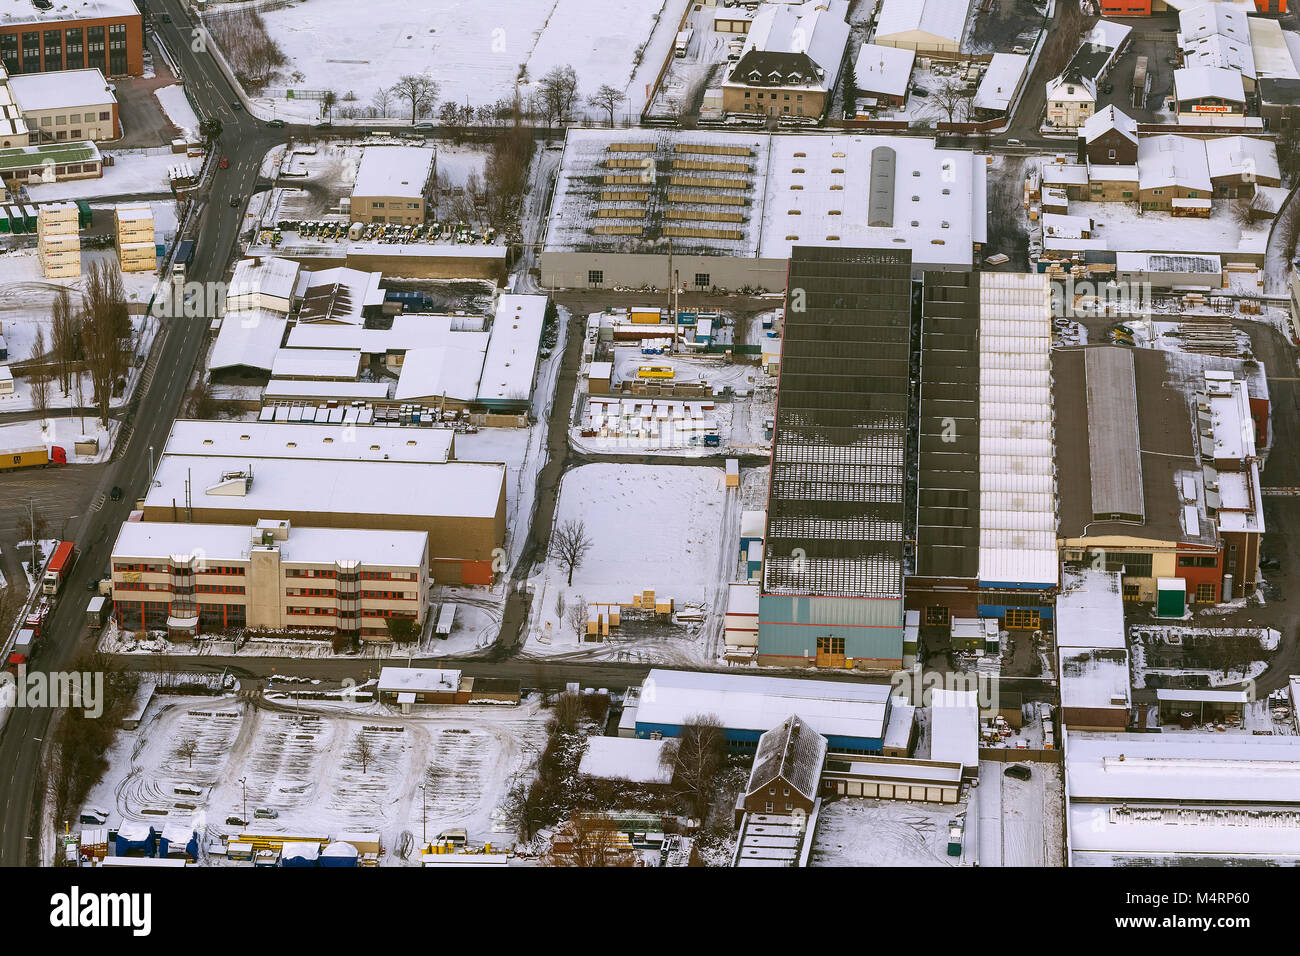 Aerial view, Port of Dortmund with the Envio management PCB scandal, Dortmund, Ruhr, Nordrhein-Westfalen, Germany, - Stock Image